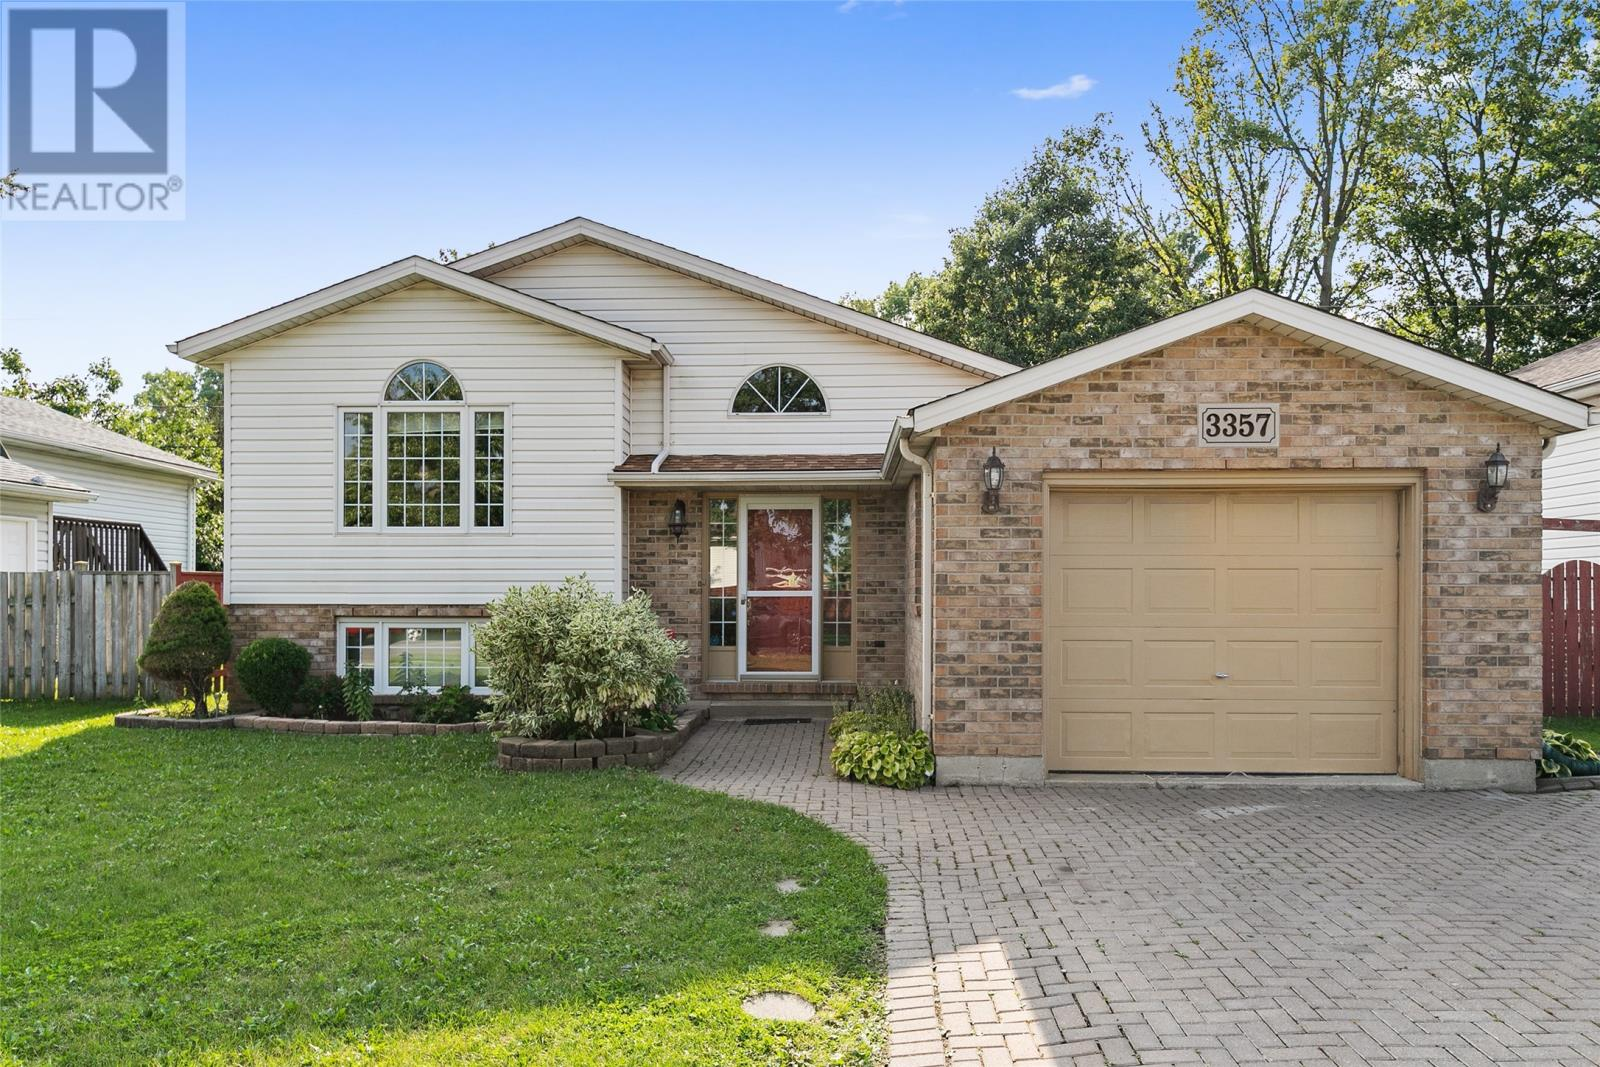 Removed: 3357 Conservation Drive, Windsor, ON - Removed on 2019-09-27 06:12:10